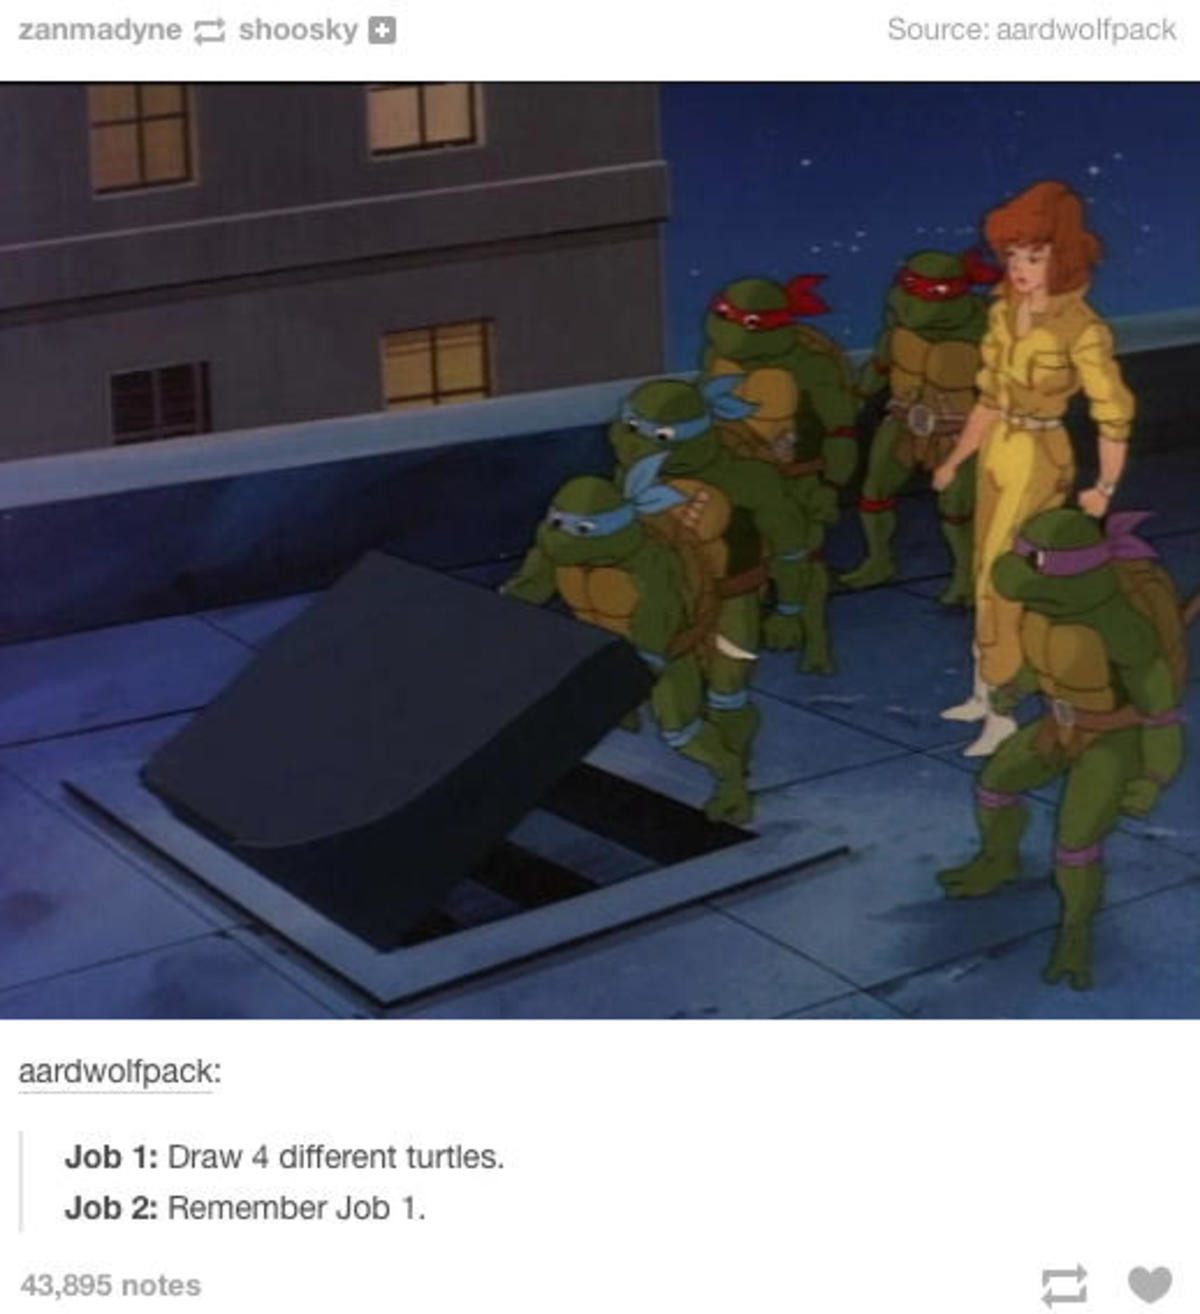 Job 1. .. Wasnt that fifth turtle chick in the cartoon too? Seems like her, blue ribbon and everything